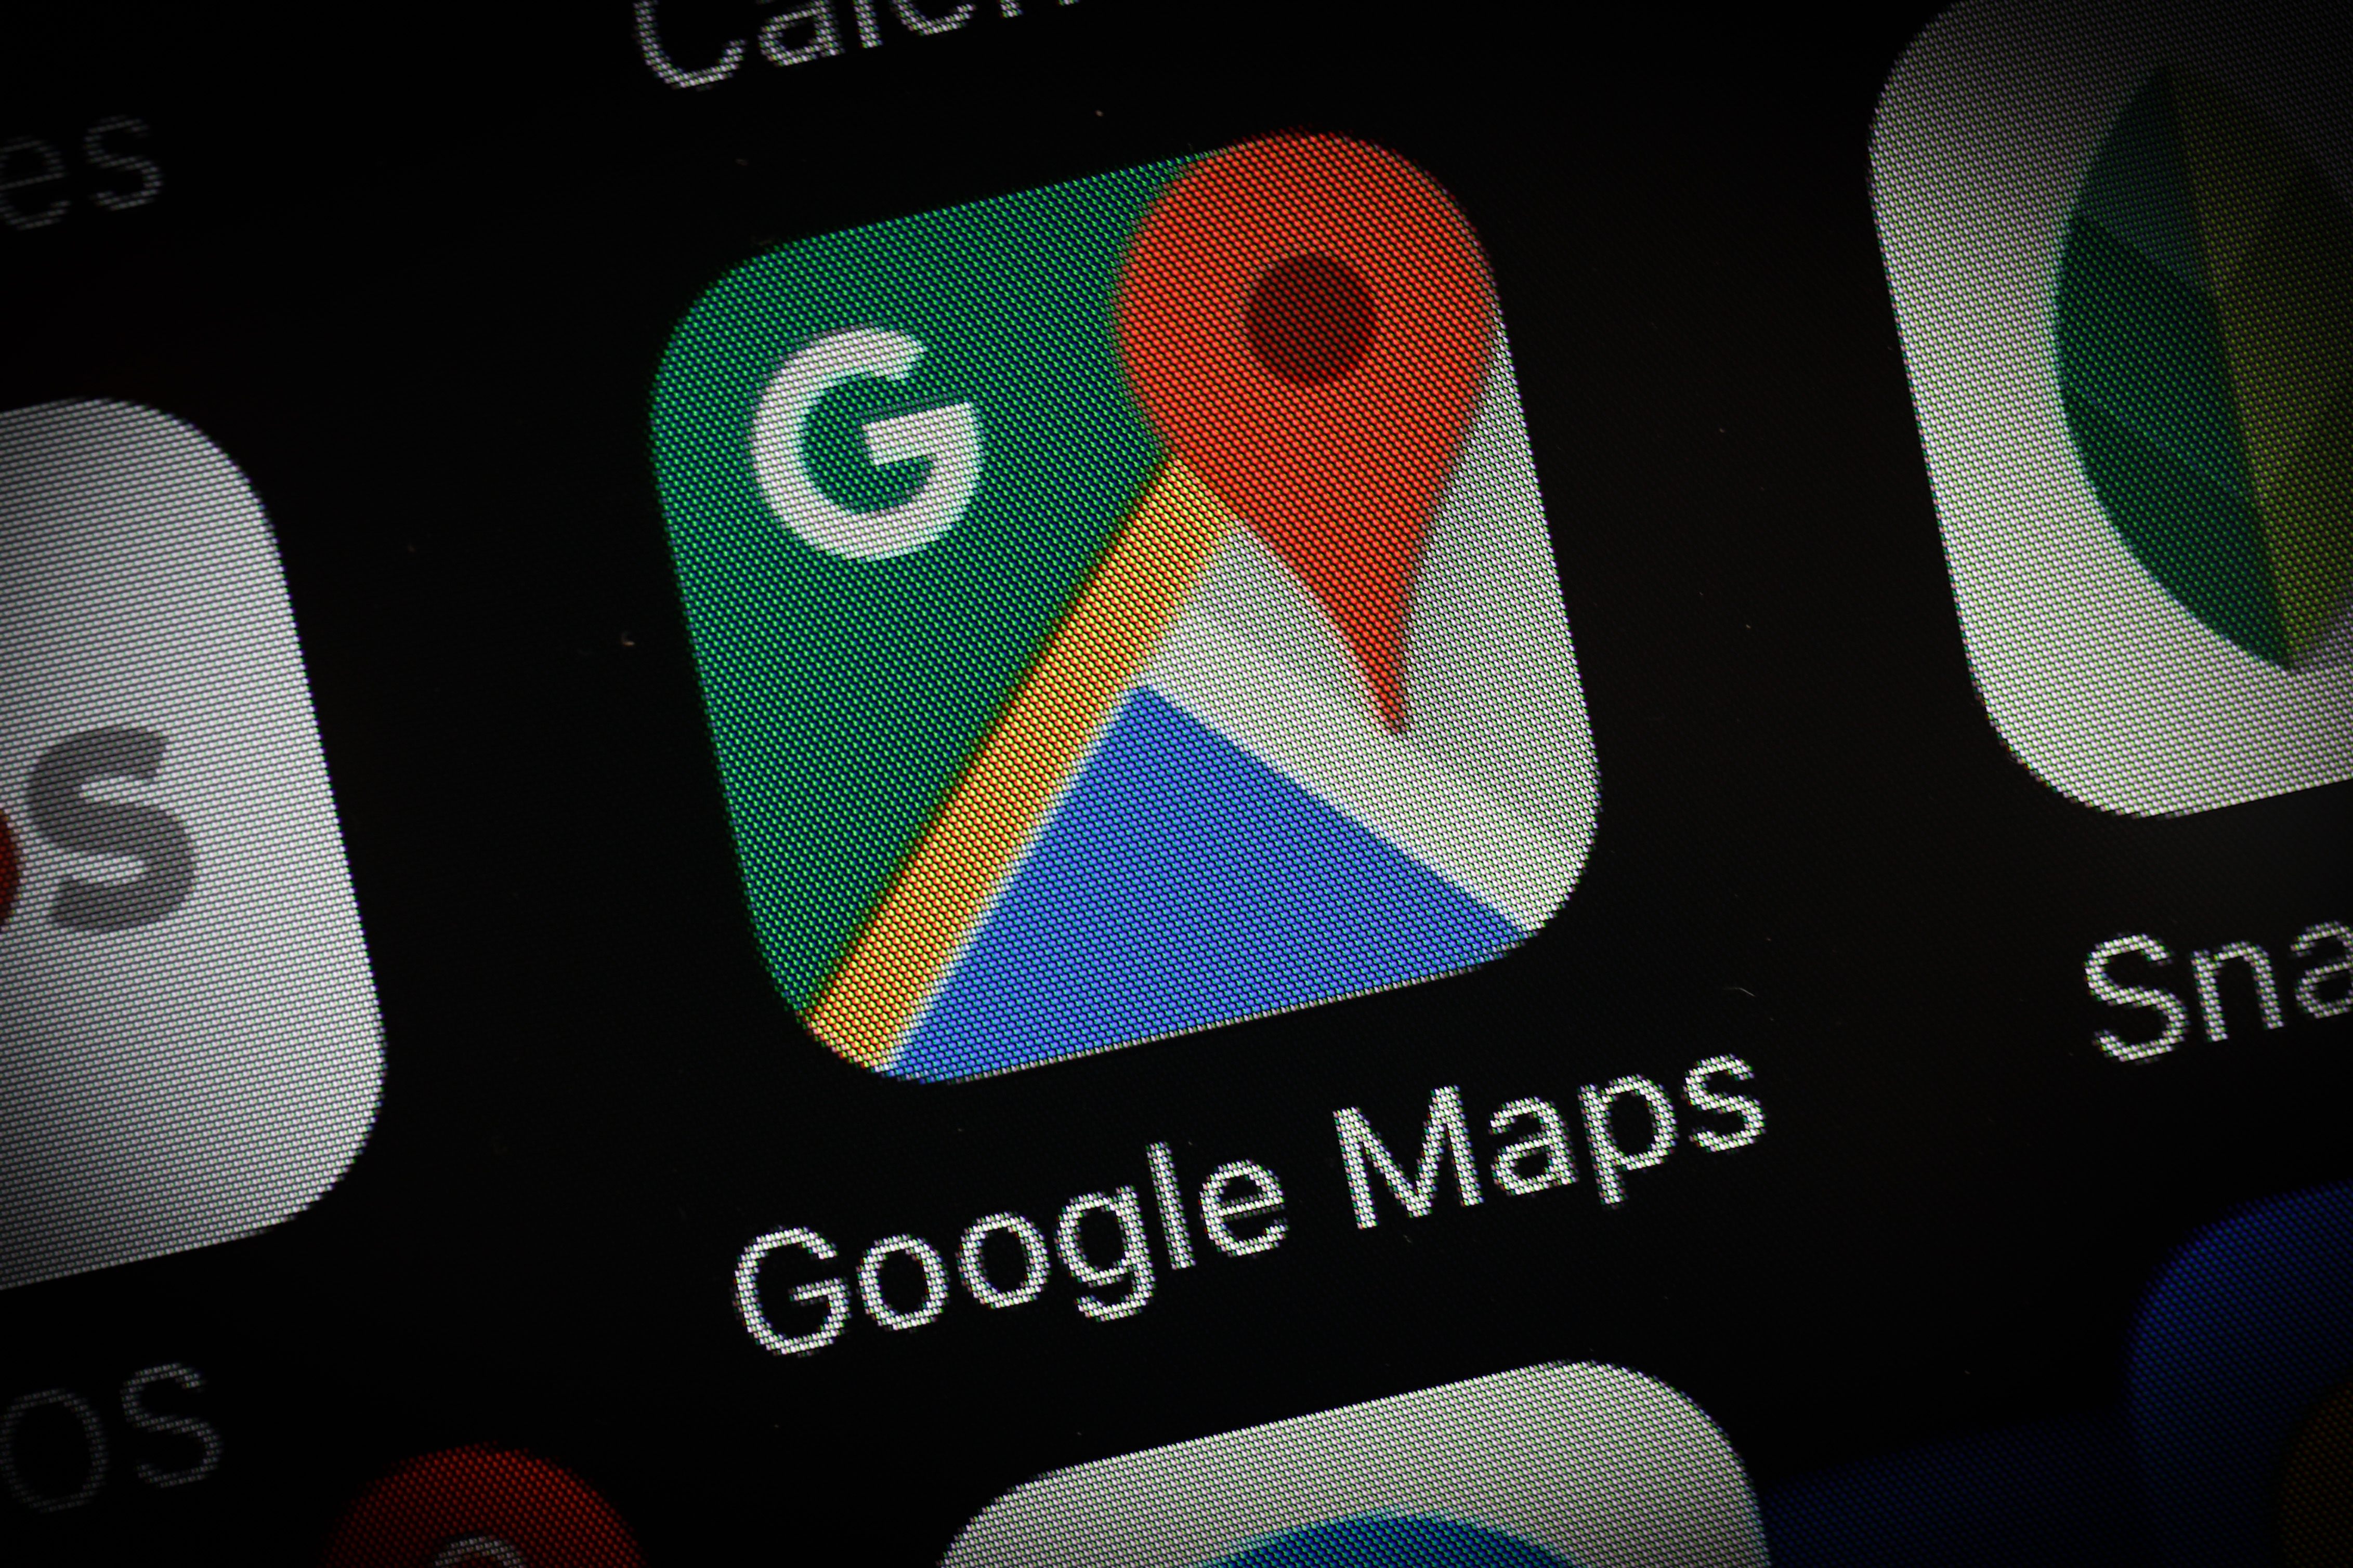 Google Maps will soon tell you when it's time to get off your train